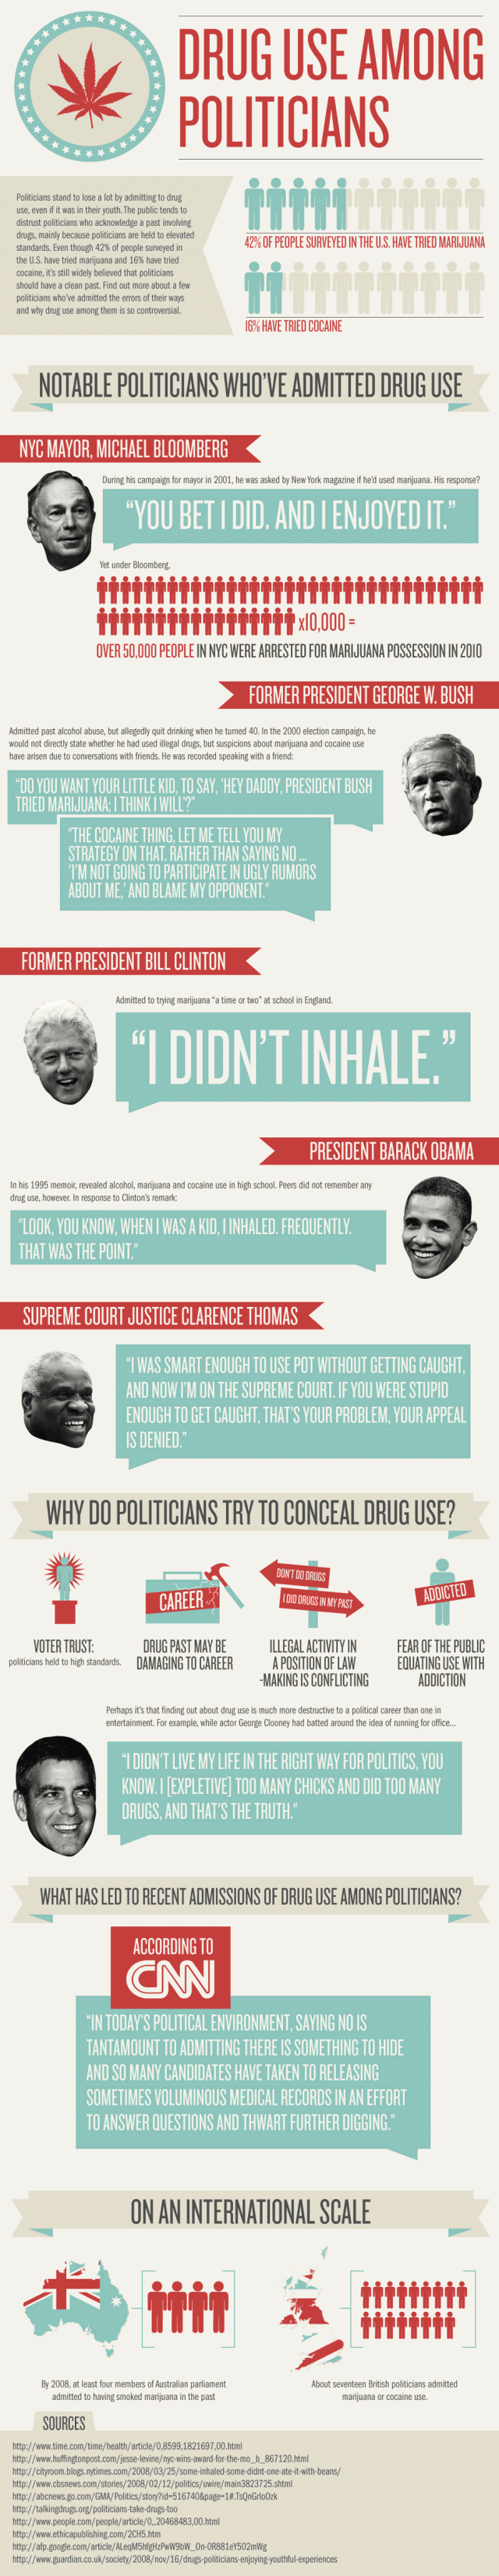 Drug-Use-Among-Politicians-infographic